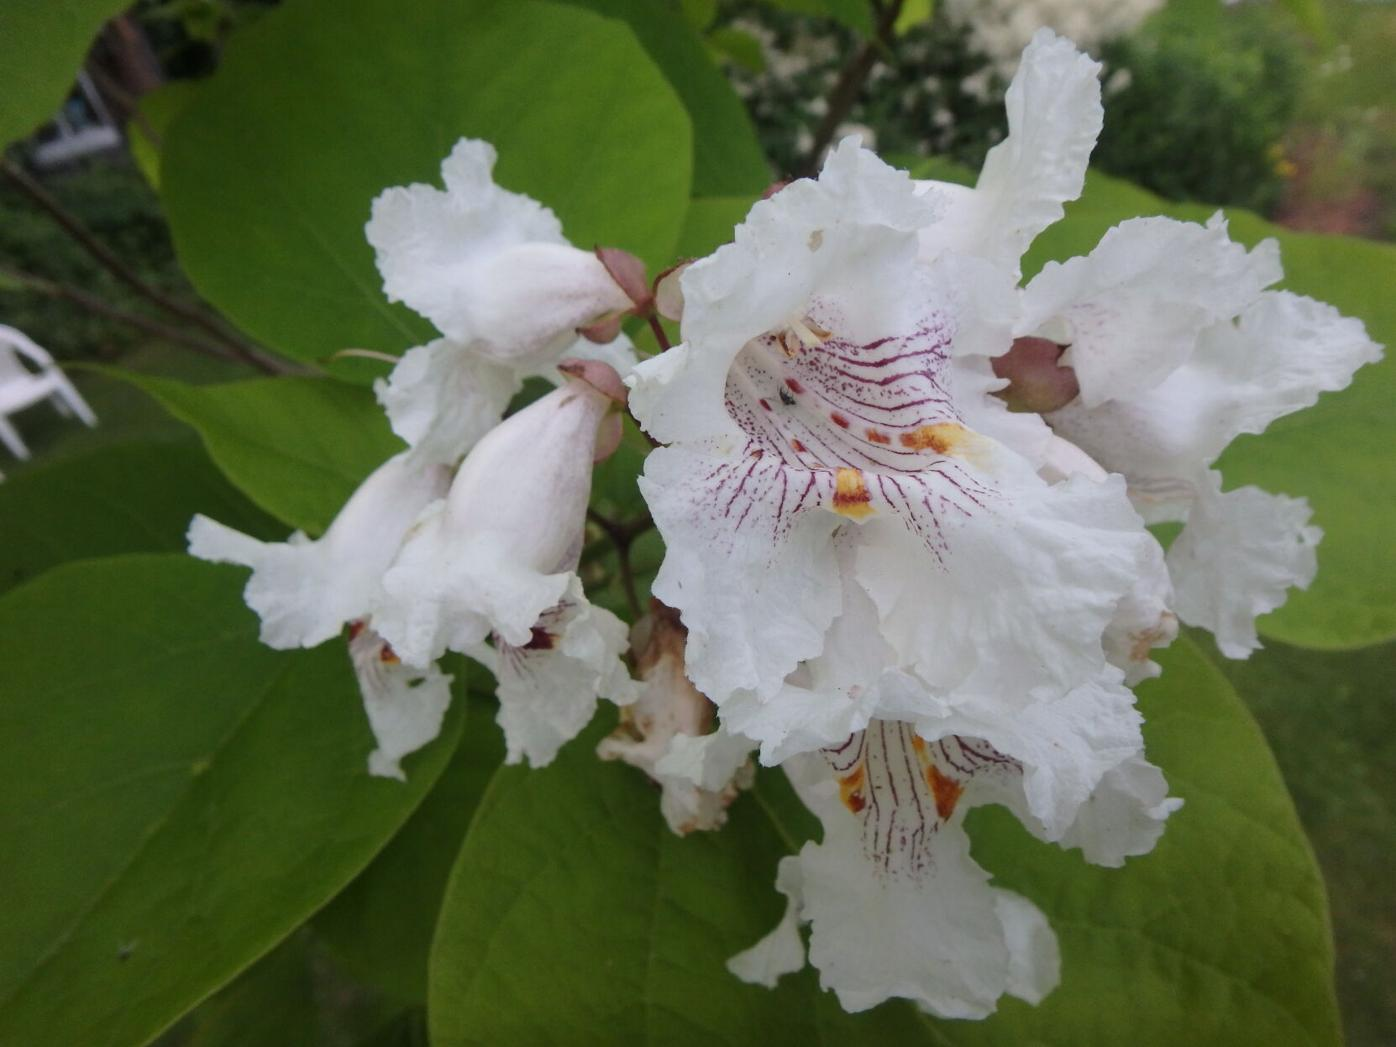 Catalpa blossoms are showy and insect pollinated,  but still can cause hay fever.JPG